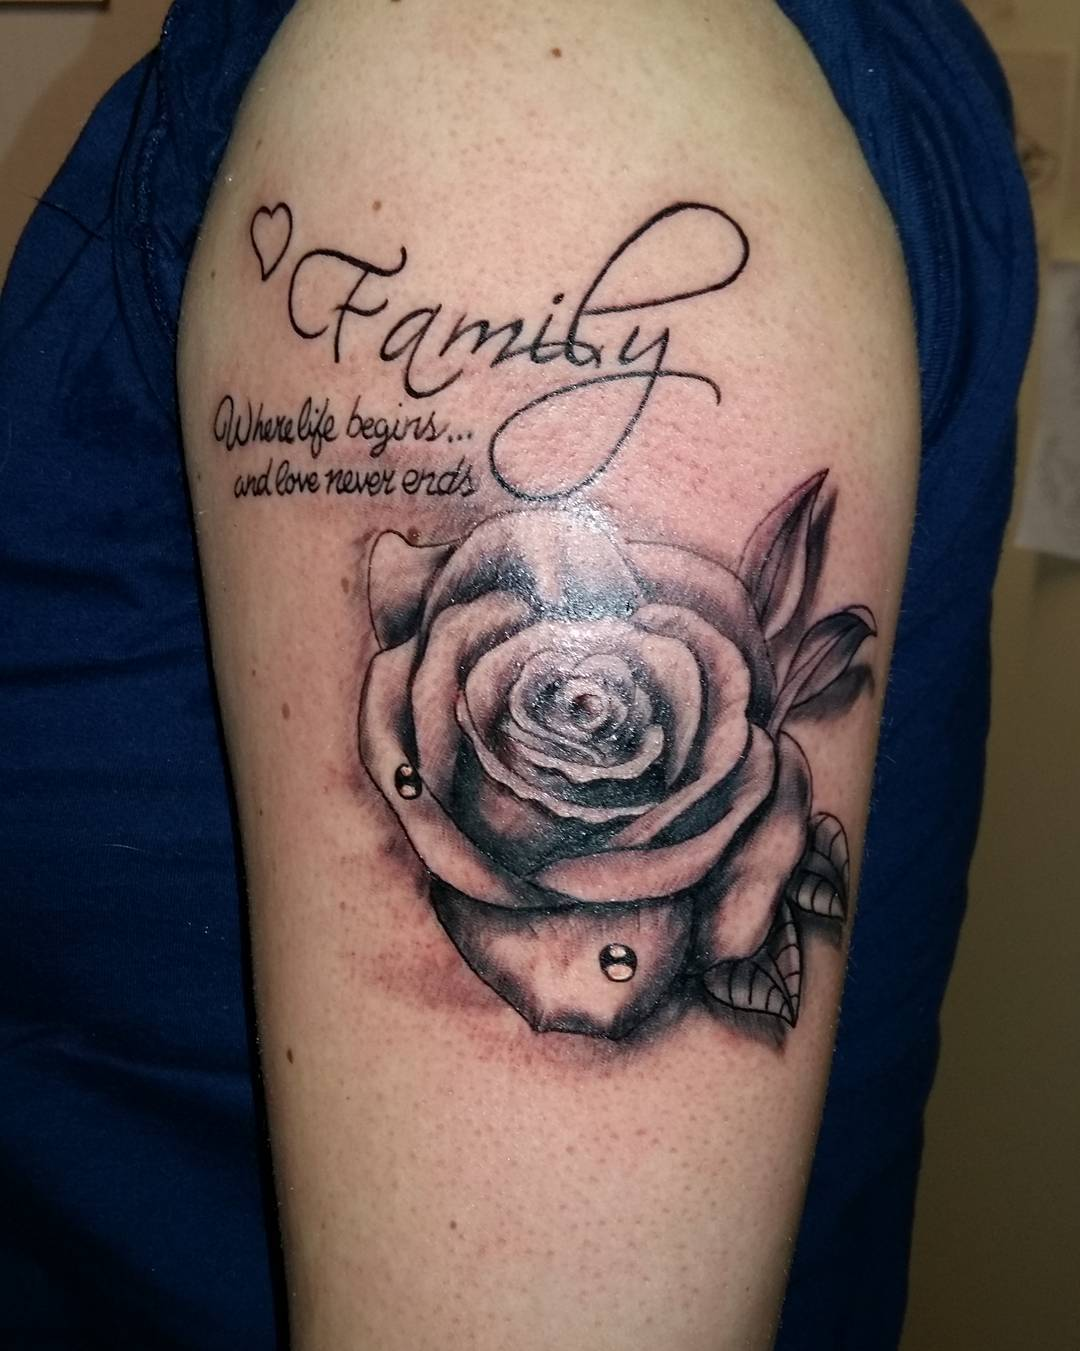 55 Best First Family Tattoo Ideas For Men And Women 2019